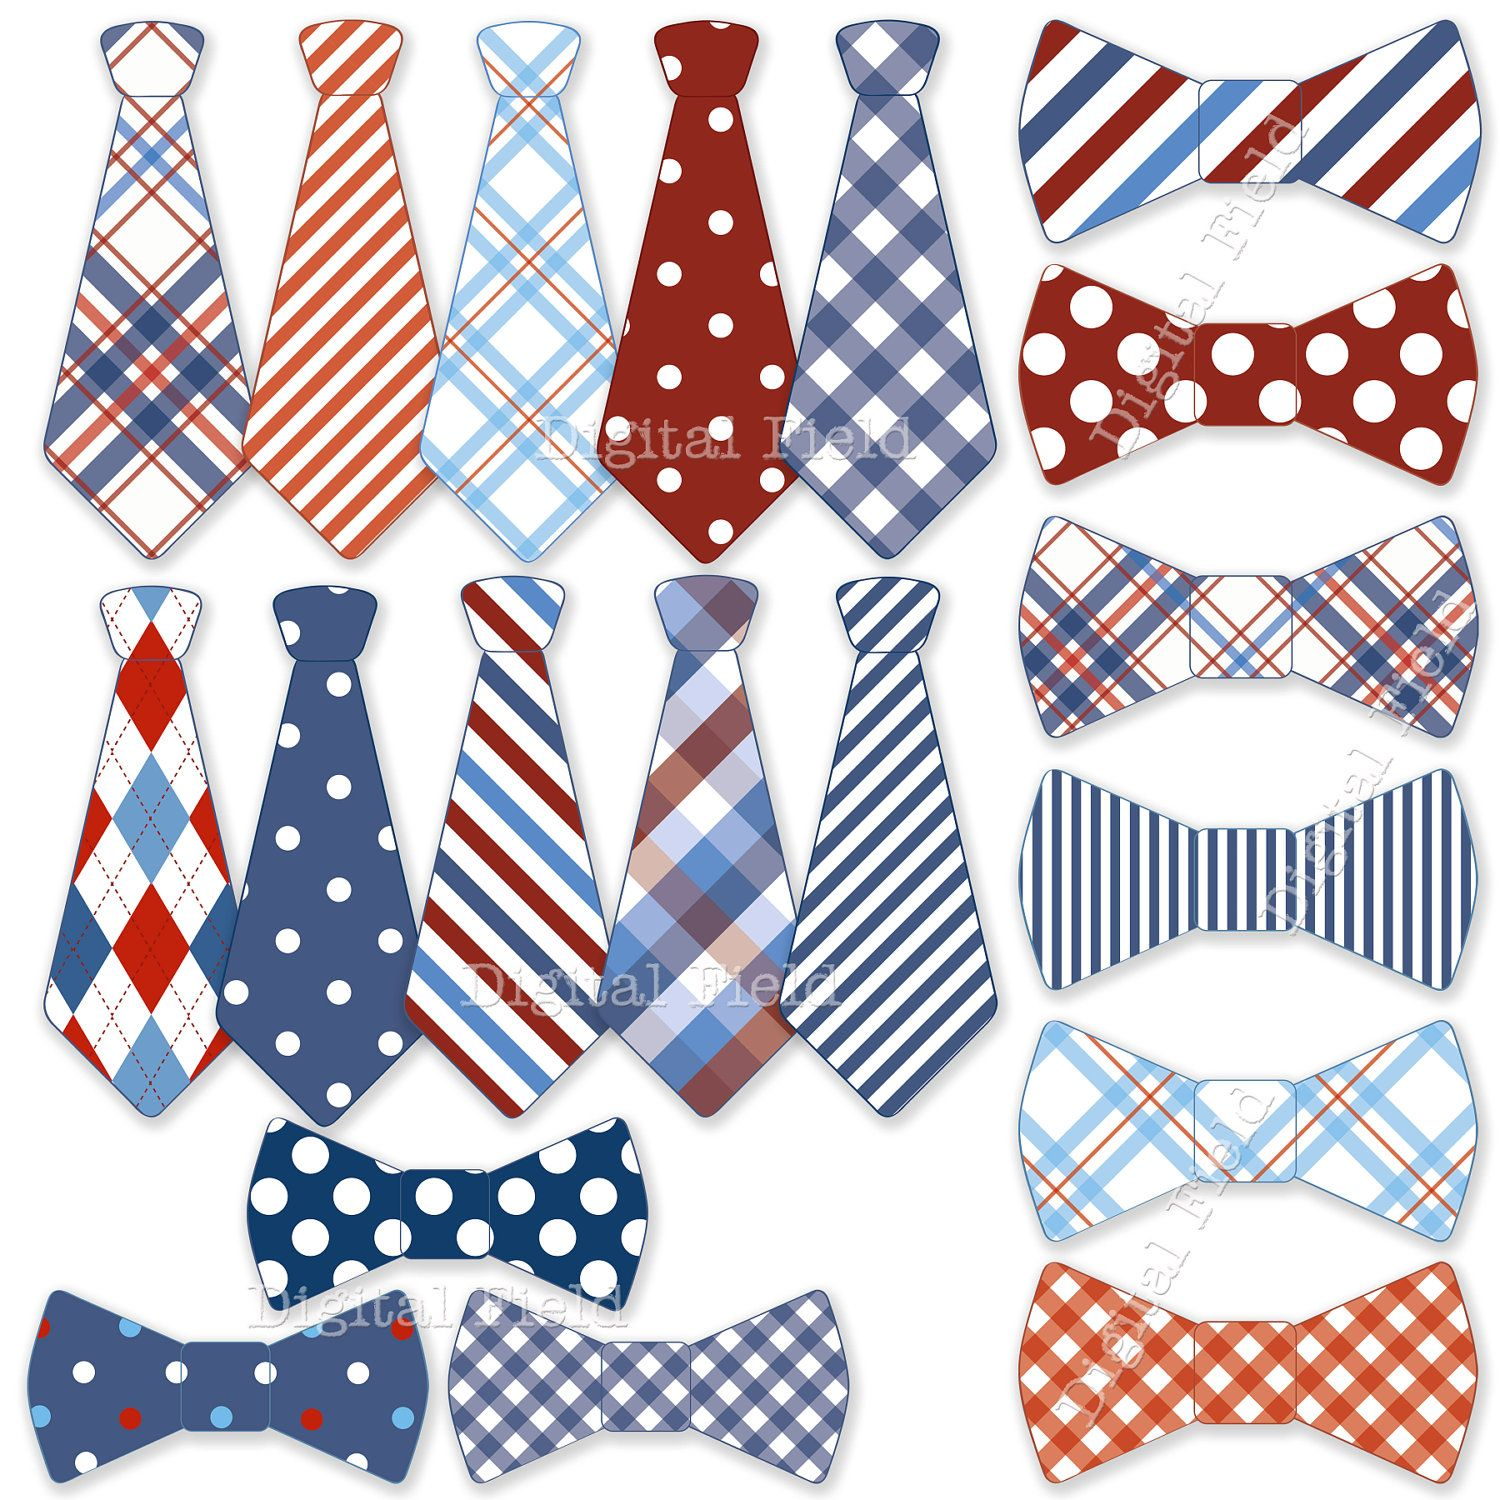 b775f7f35dc1 INSTANT DOWNLOAD Necktie and Tie Bow clip art set - blue white red  printable digital clipart. $3.50, via Etsy.